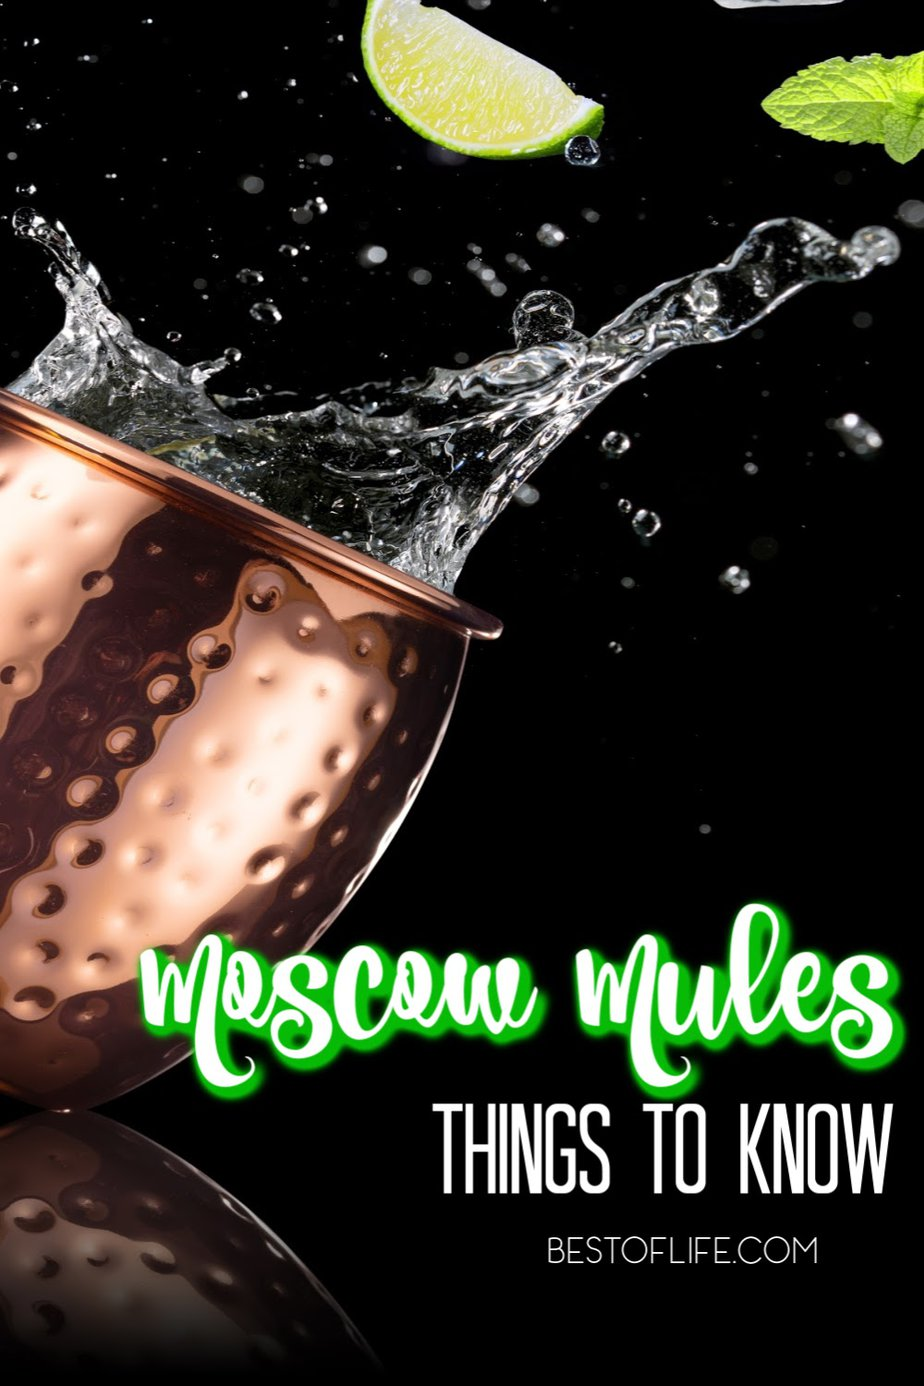 When you understand the best things to know about Moscow Mules, you will have a deeper appreciation for the classic cocktail, the Moscow Mule. Moscow Mule Recipes | Fall Cocktails | Best Cocktails | Vodka Cocktails #cocktails #moscowmule